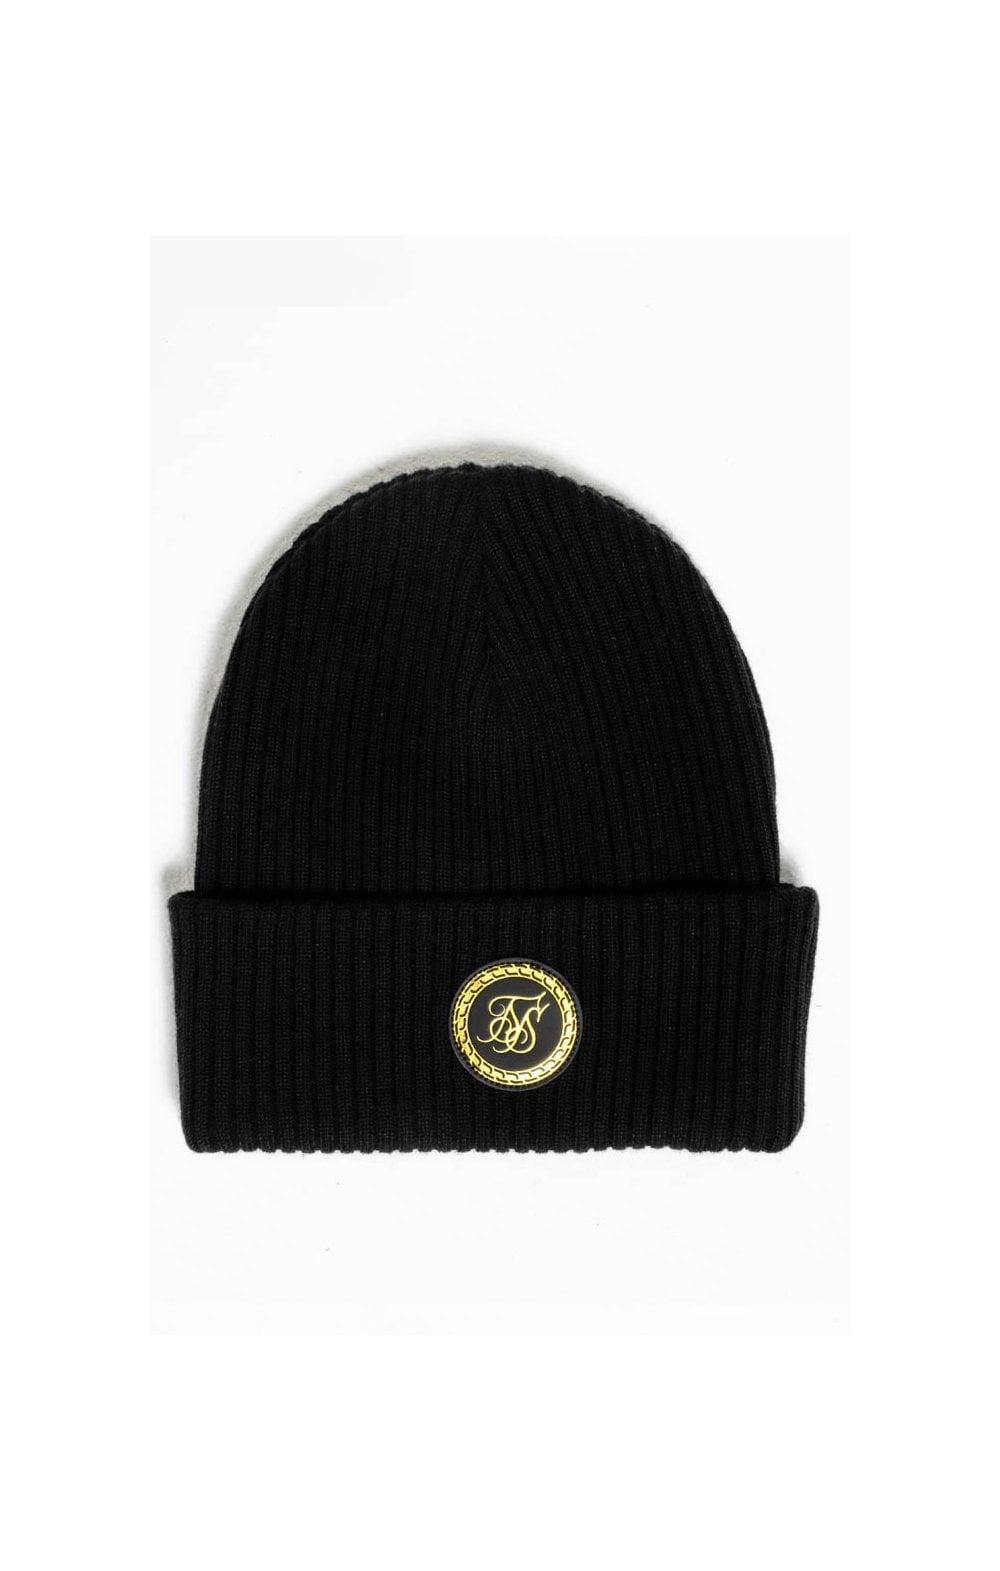 Load image into Gallery viewer, SikSilk x Dani Alves Beanie - Black